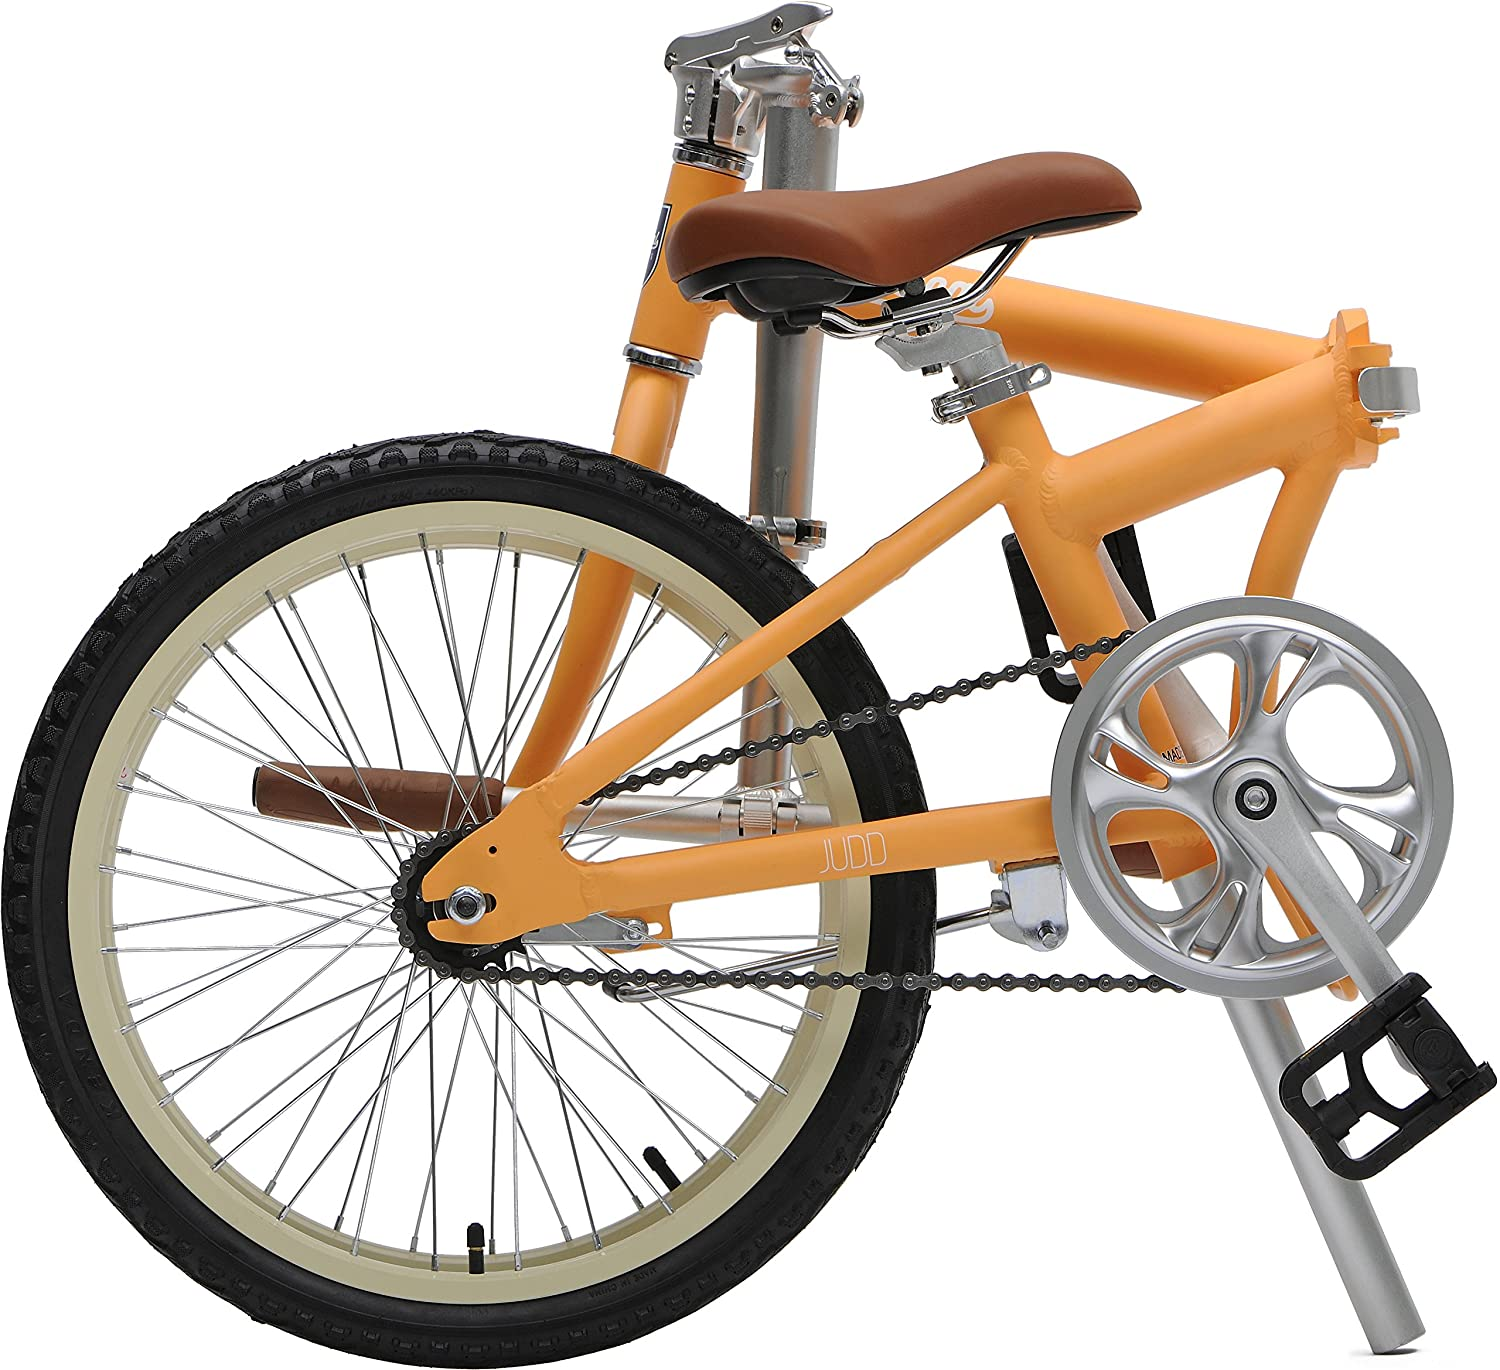 Critical ciclos Judd Single-Speed Plegable Bicicleta con Freno de Posavasos, Color Matte Saffron, tamaño Talla única: Amazon.es: Deportes y aire libre